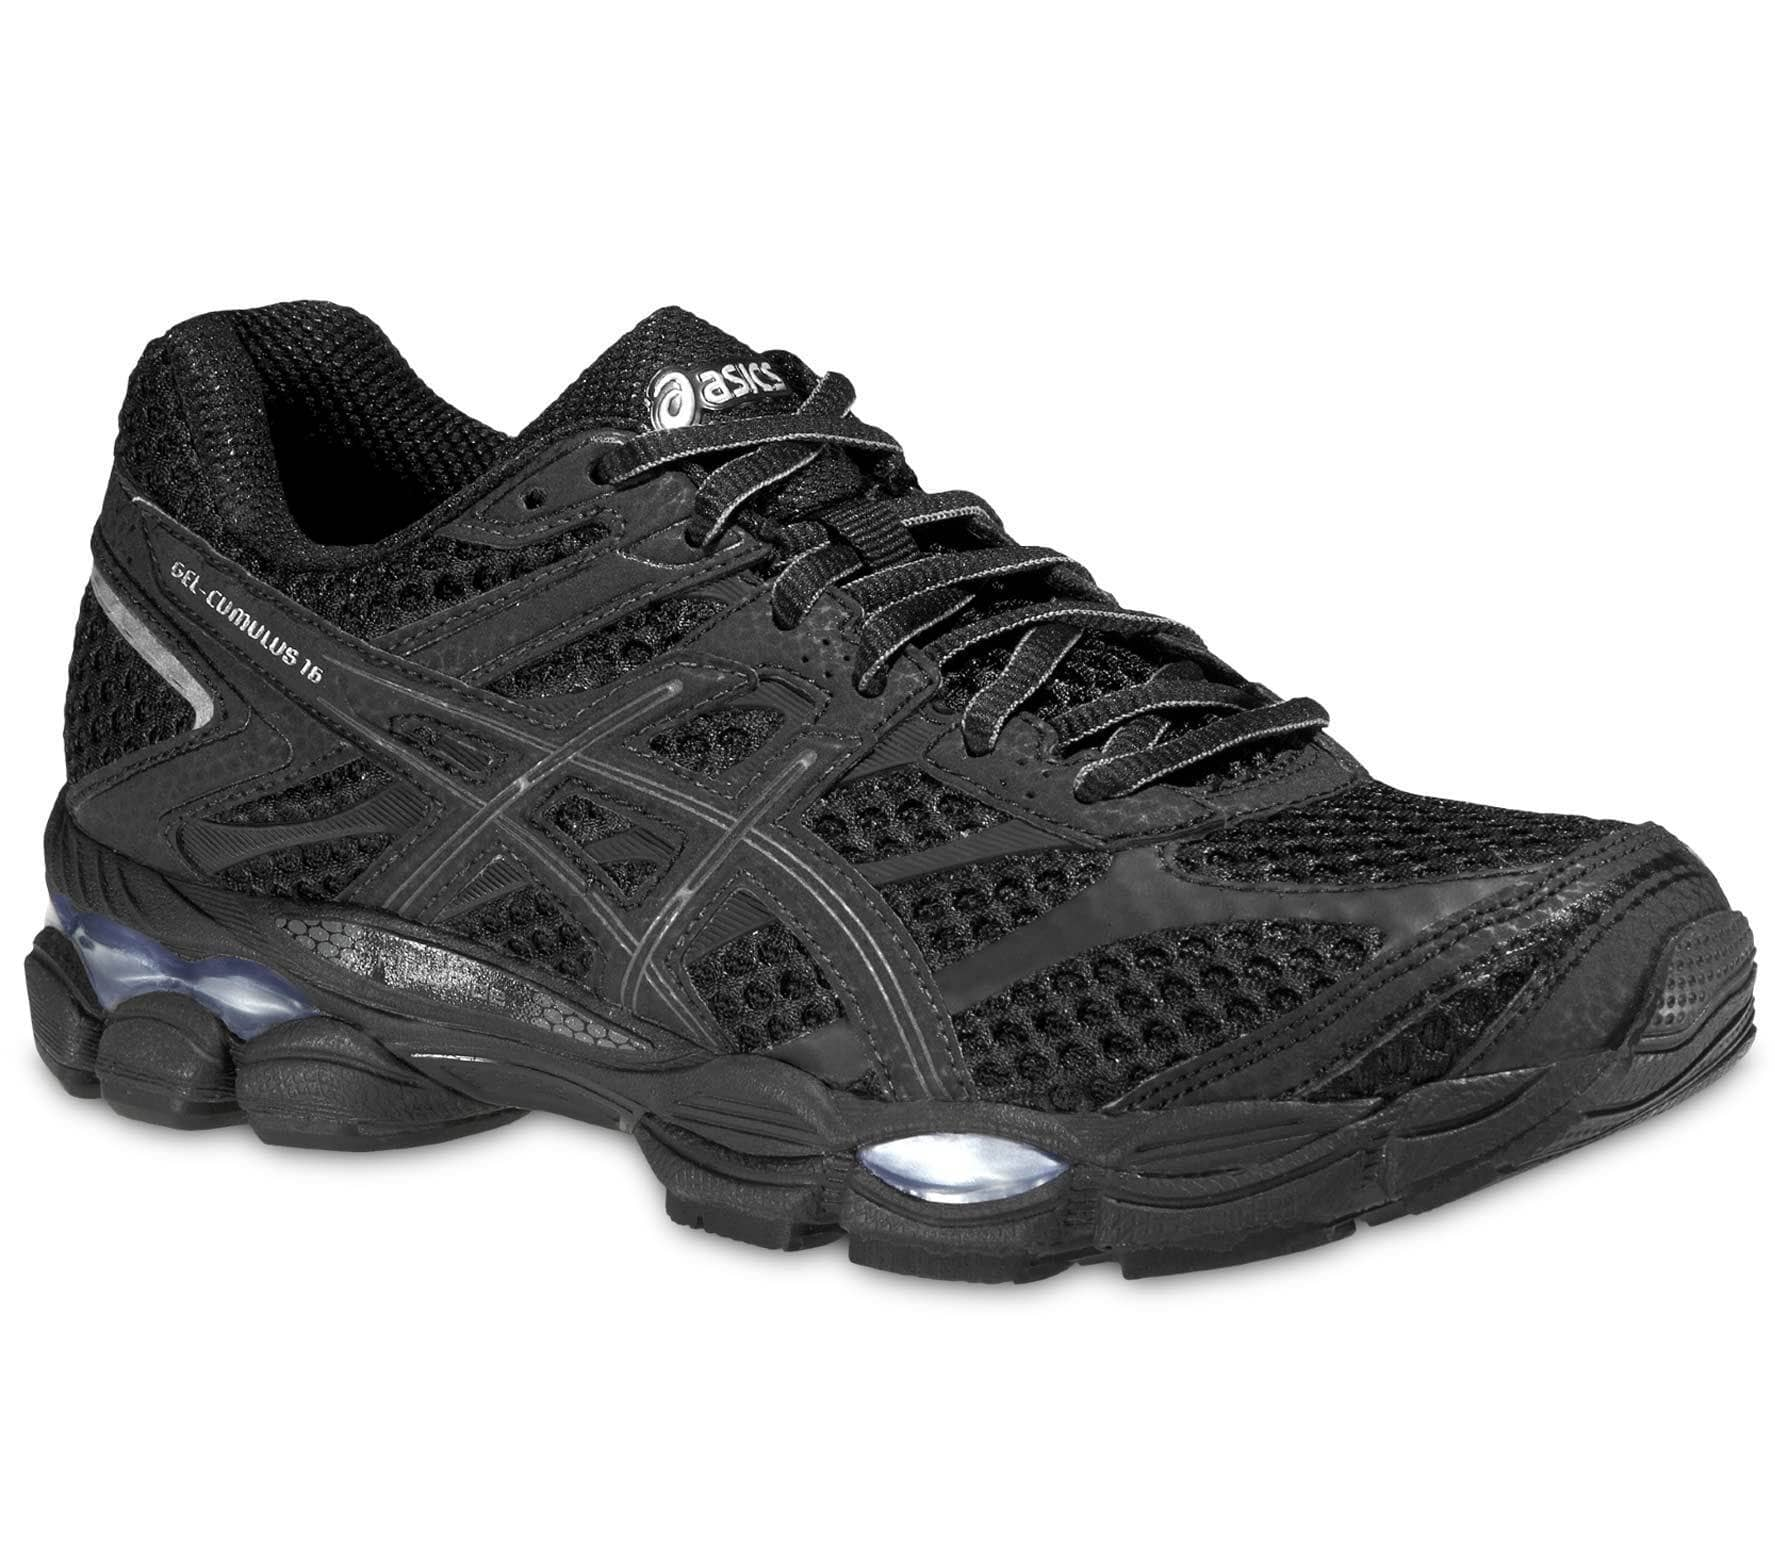 ASICS - Gel Cumulus 16 women's running shoes (black)